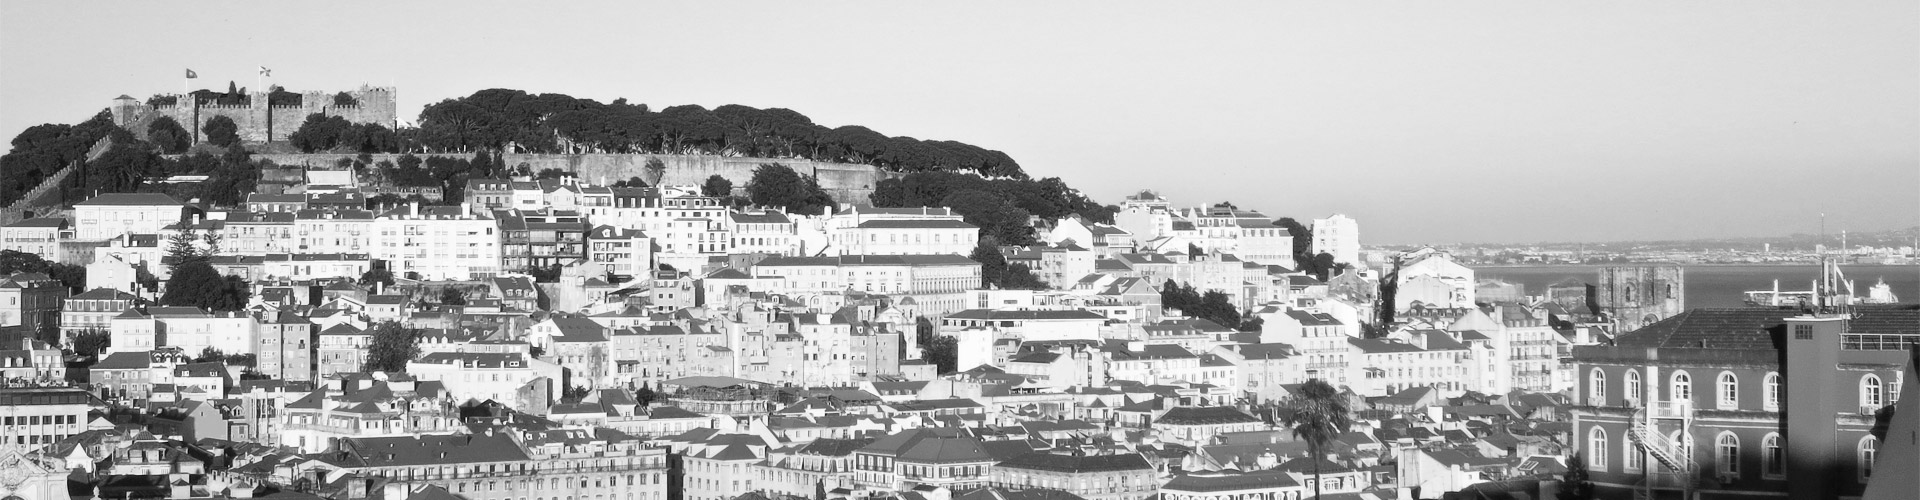 Portugal travel report